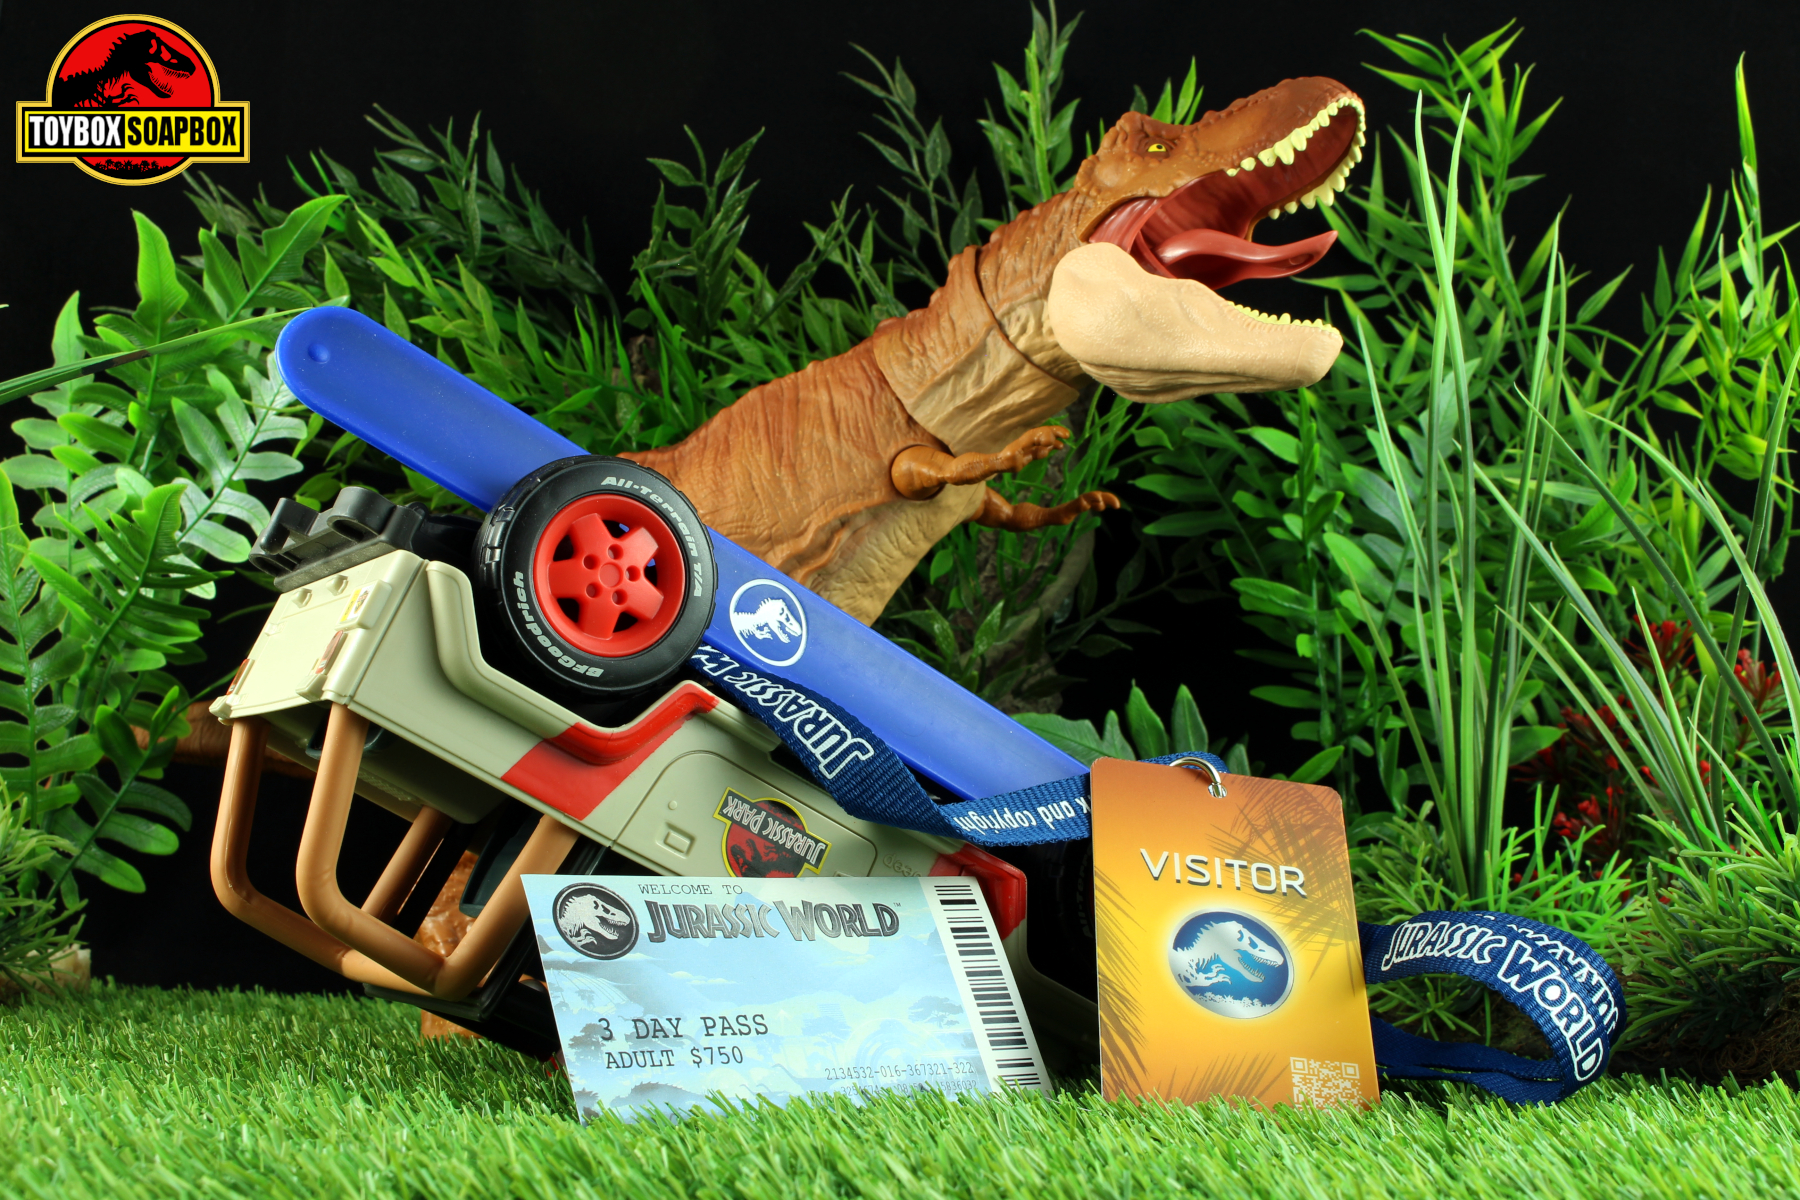 deluxe jurassic world welcome kit ticket snap band and lanyard